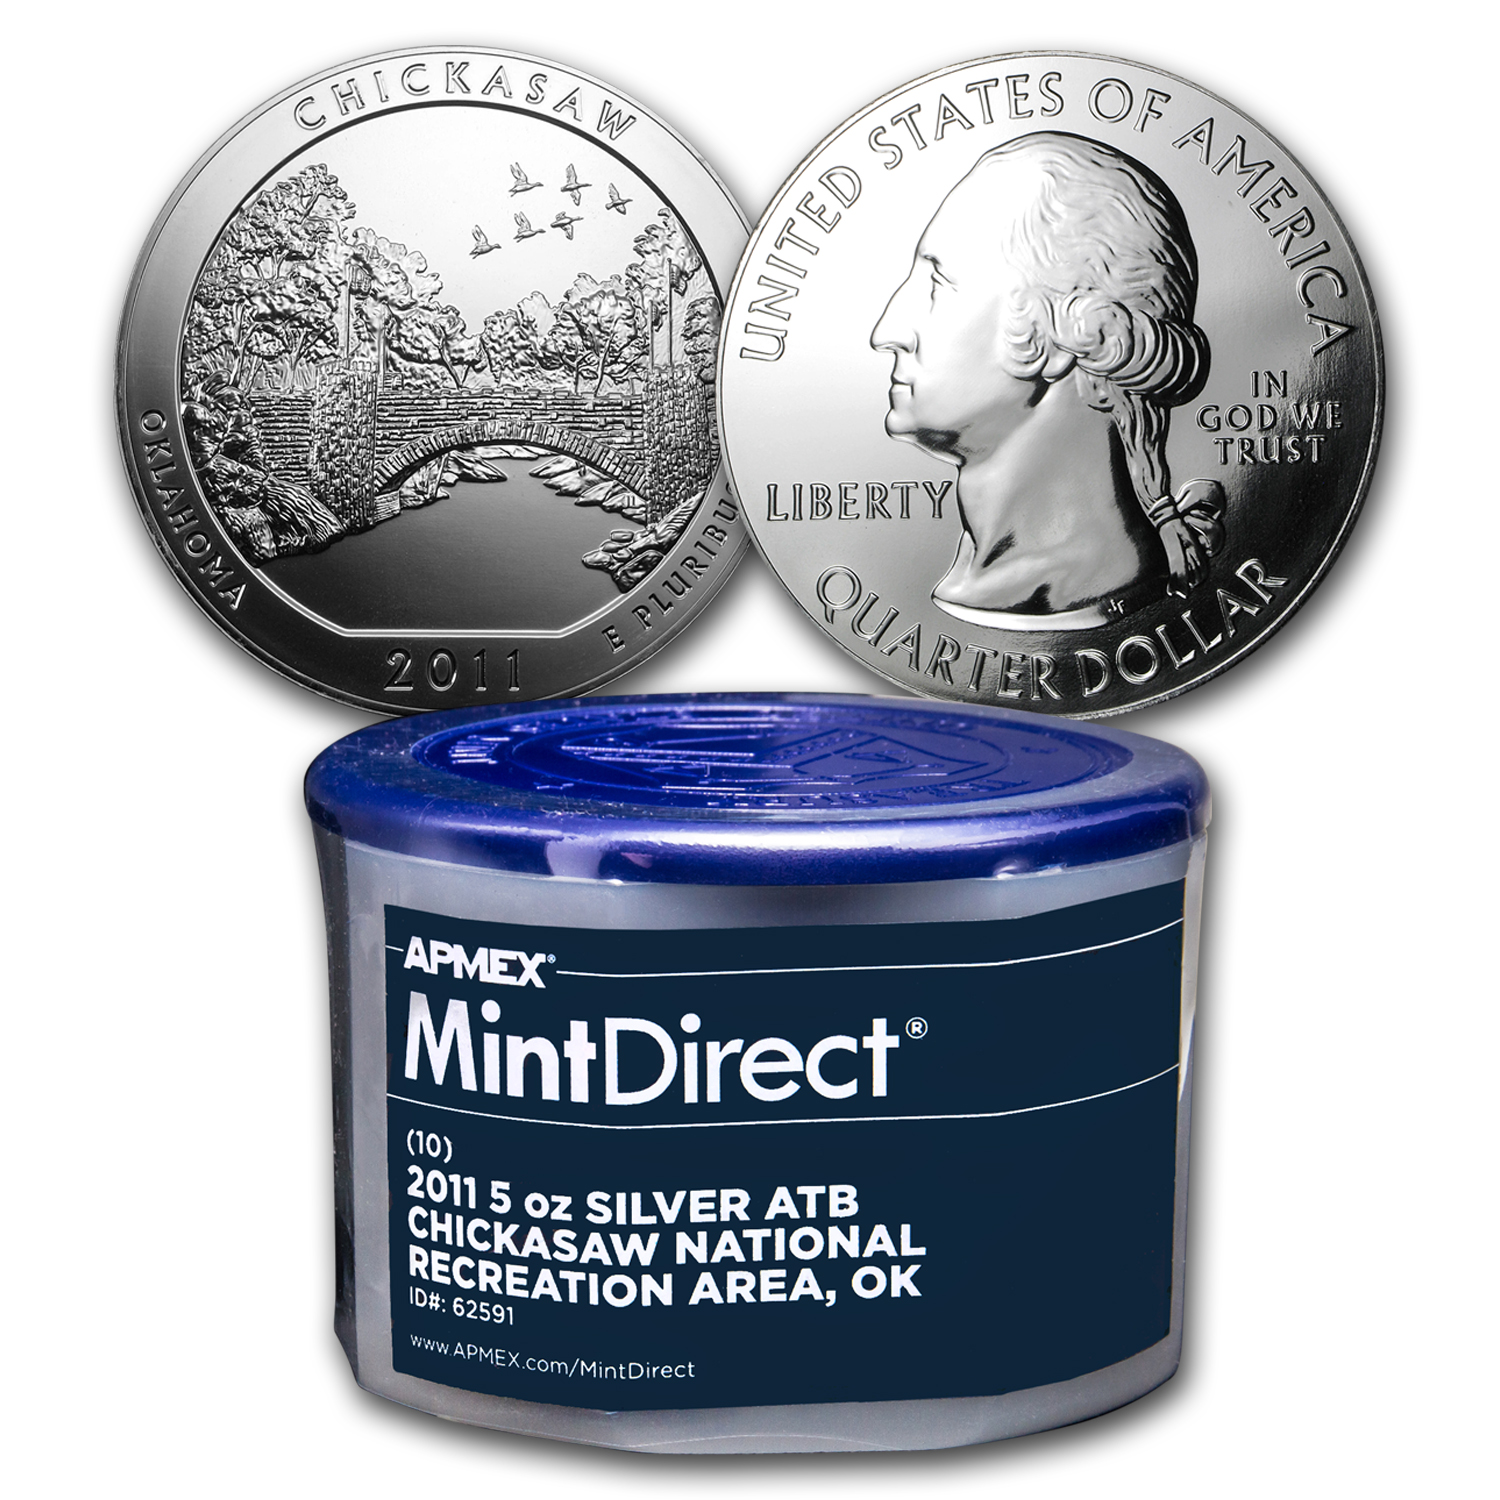 2011 5 oz Silver ATB Chickasaw, OK (10-Coin MintDirect® Tube)